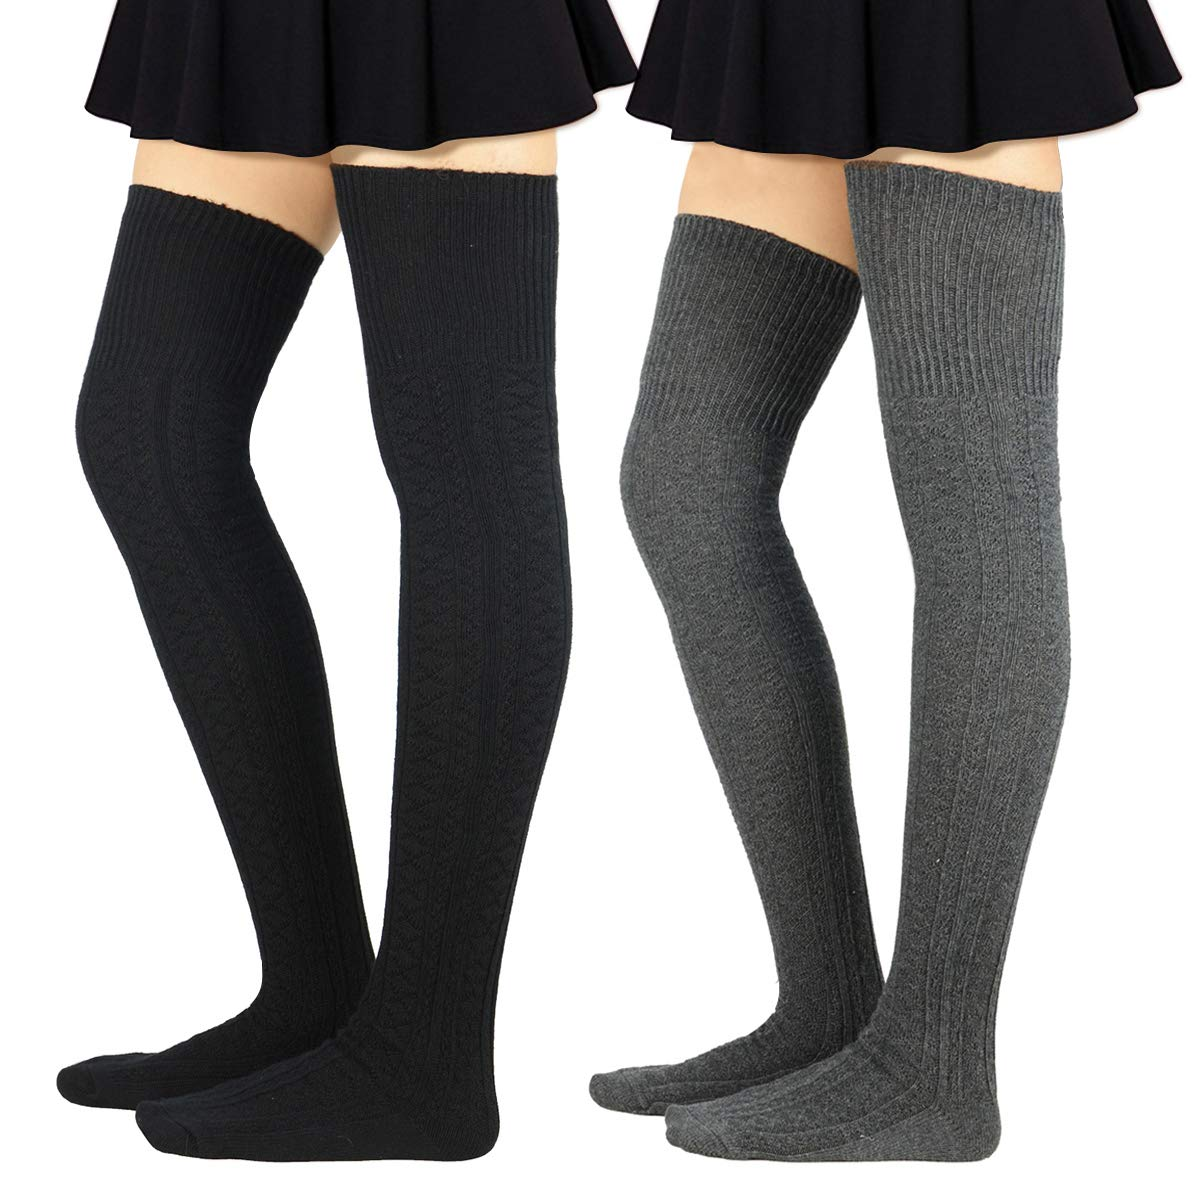 094c95ff81e Zando Women Stripe Tube Dresses Over the Knee Thigh High Stockings Cosplay  Socks product image